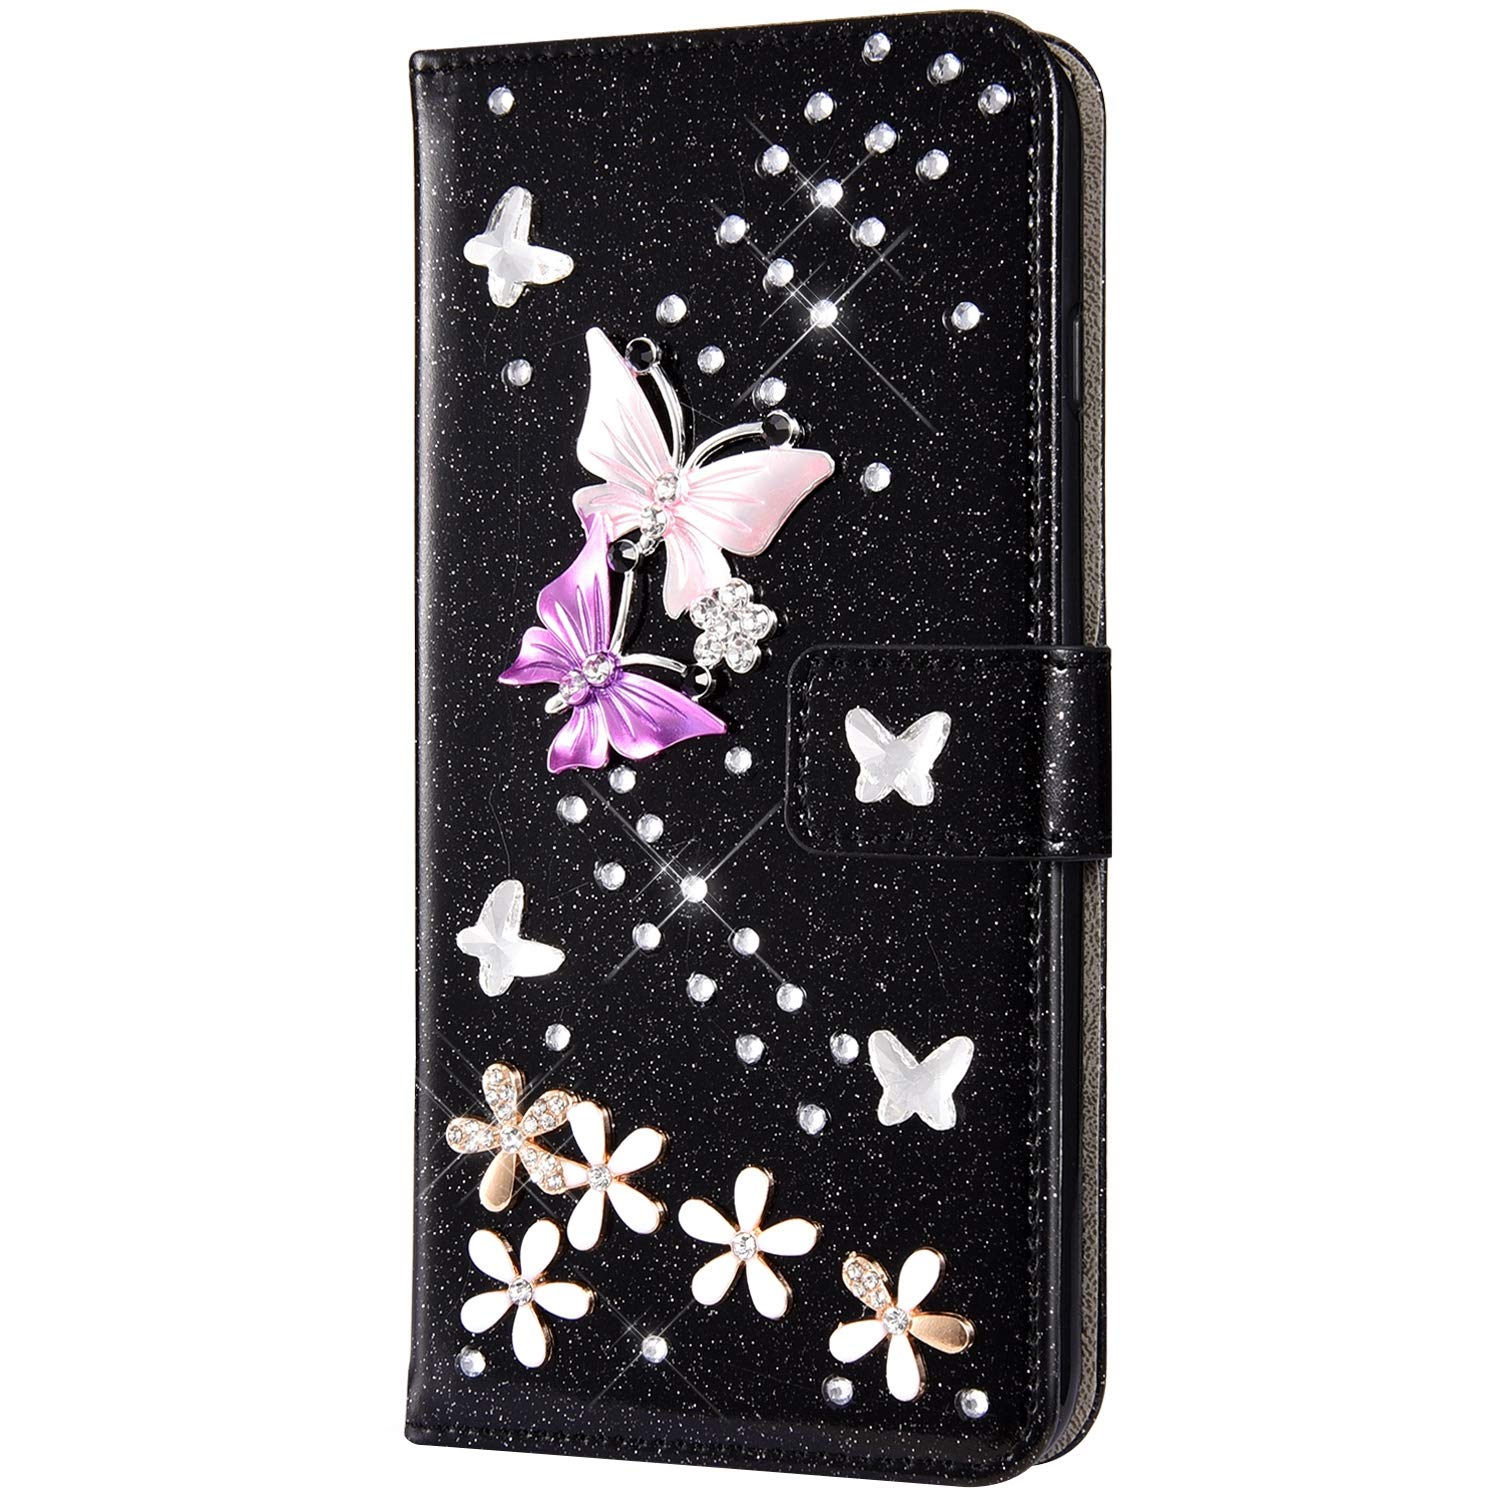 Case for Galaxy J3 Flip Case Premium PU Leather Wallet Case 3D Handmade Glitter Bling Shiny Diamond Butterfly with Card Slots Kickstand for Galaxy J3,Black by ikasus